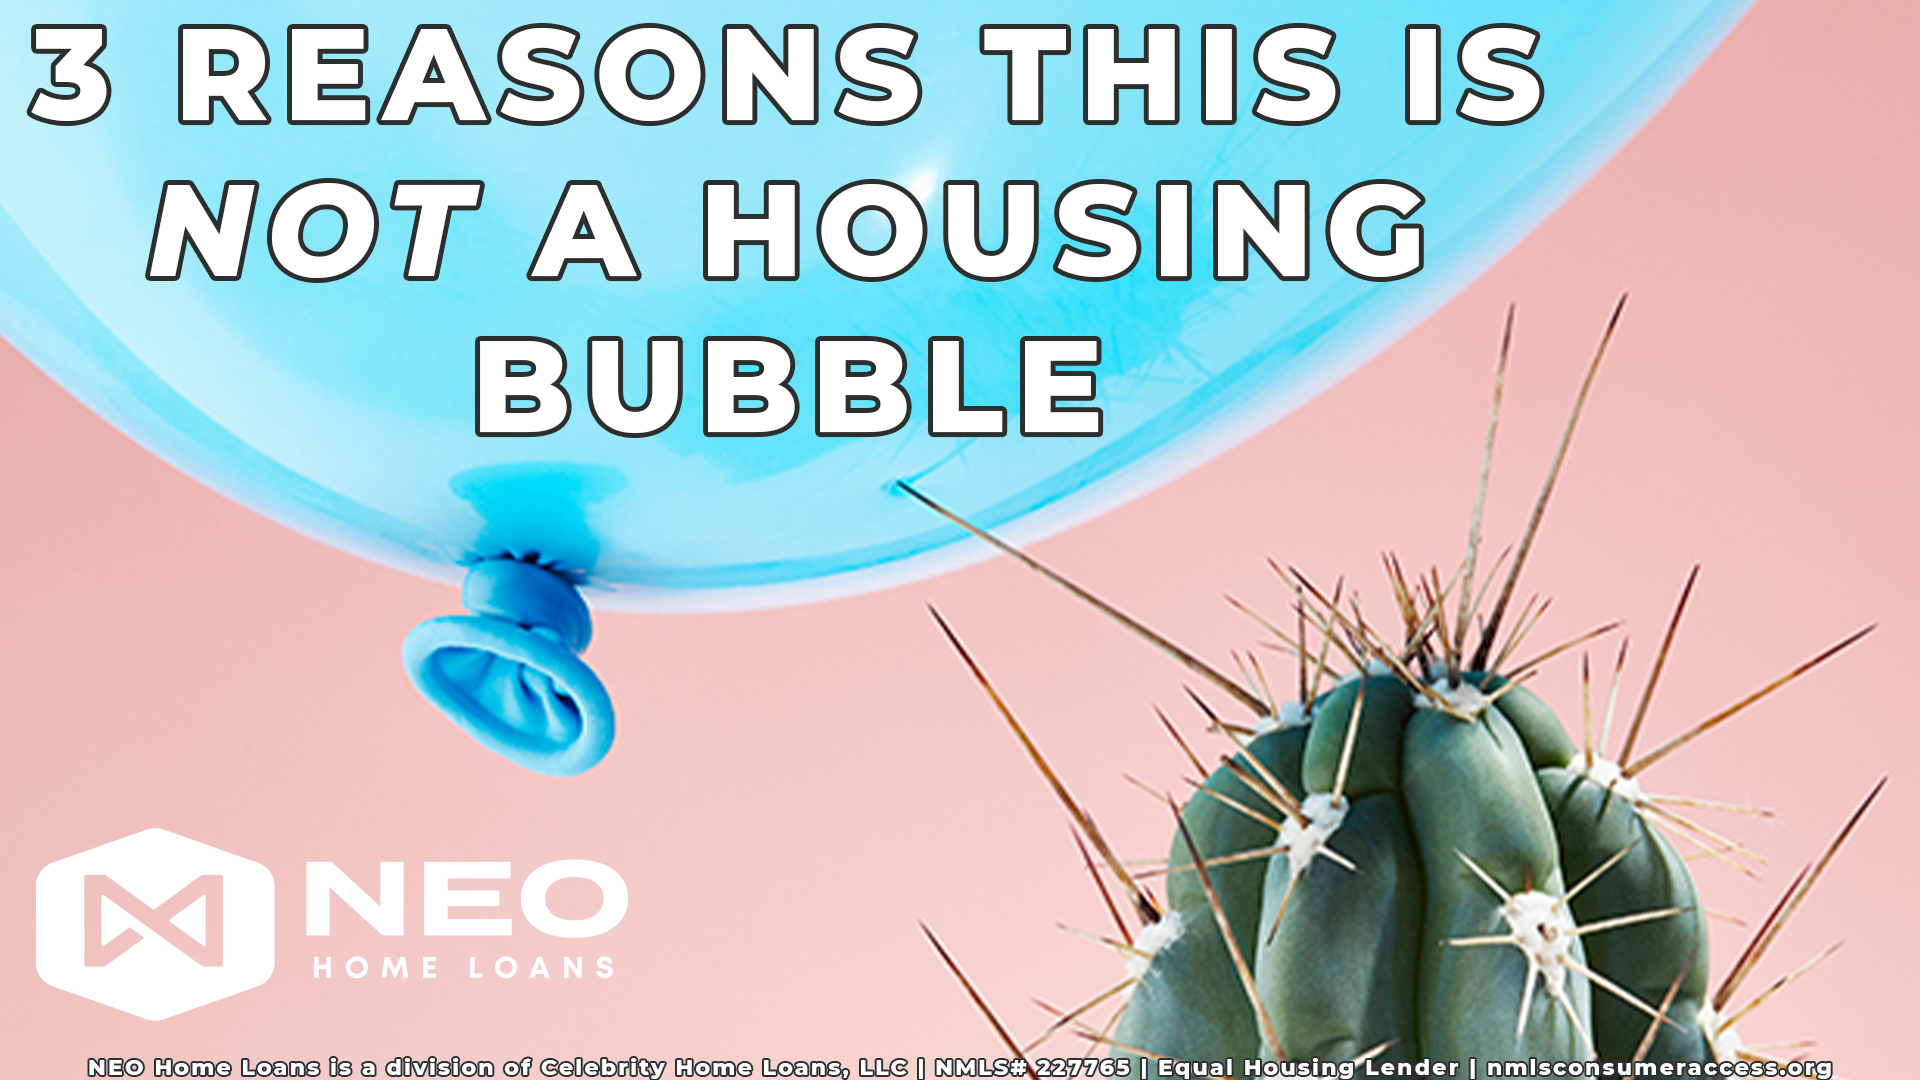 Three Reasons This Is NOT A Housing Bubble